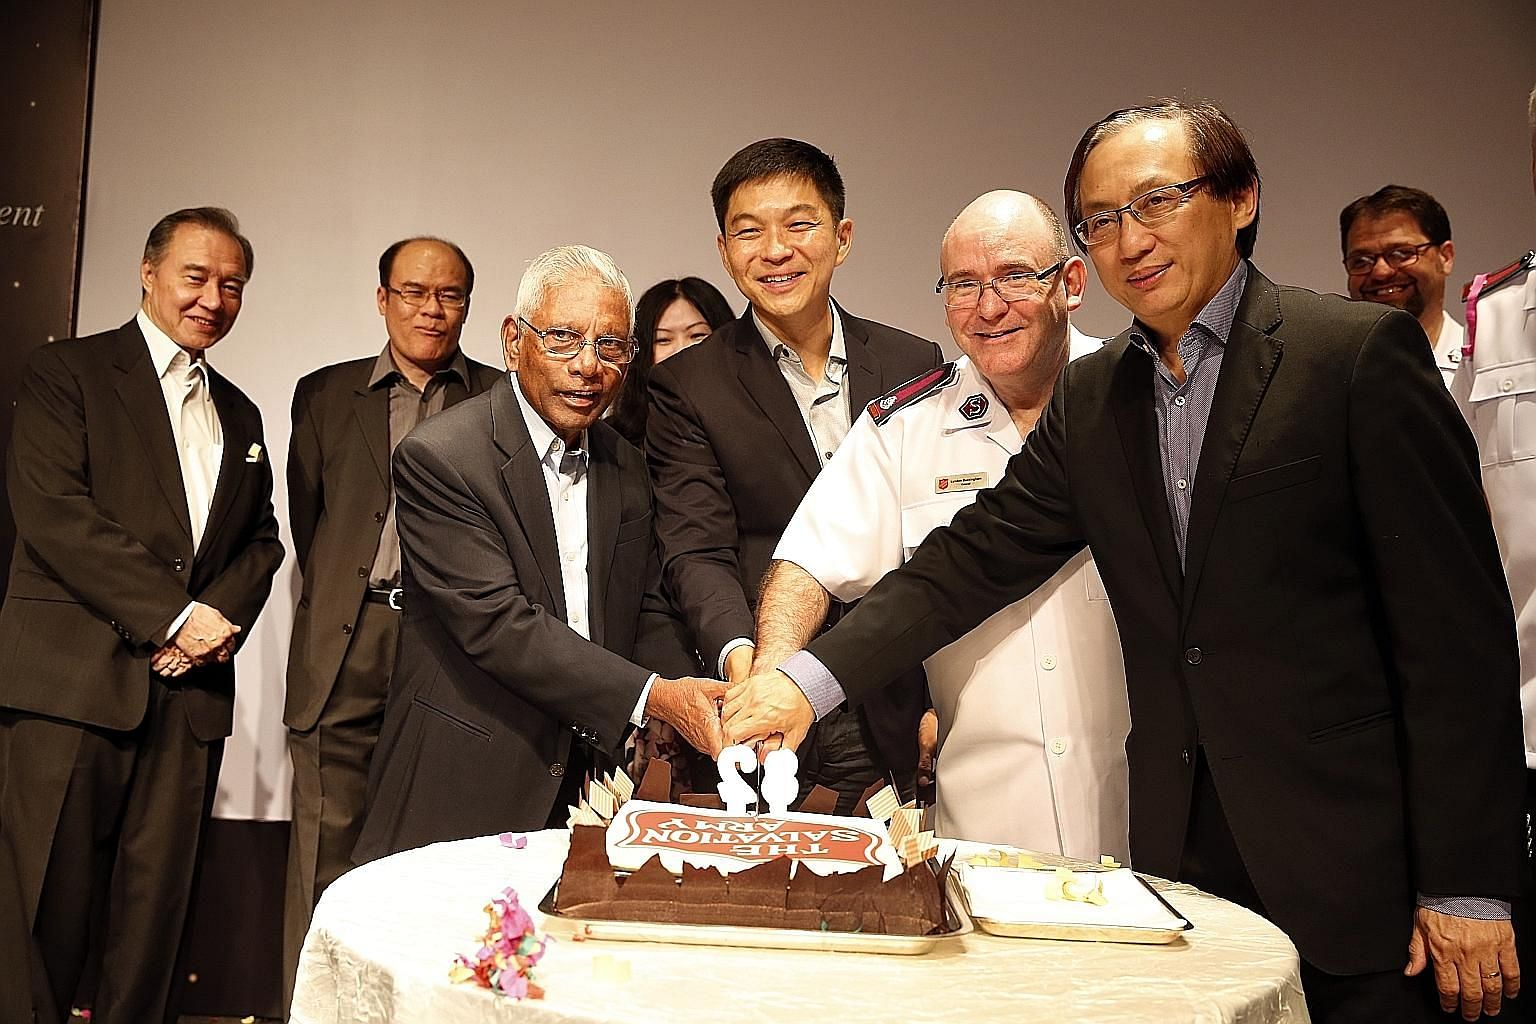 At the dinner yesterday were (front, from left) former minister S. Dhanabalan, patron of The Salvation Army; Mr Tan Chuan- Jin, Social and Family Development Minister; Colonel Lyndon Buckingham, Territorial Commander, The Salvation Army; and Mr Bill